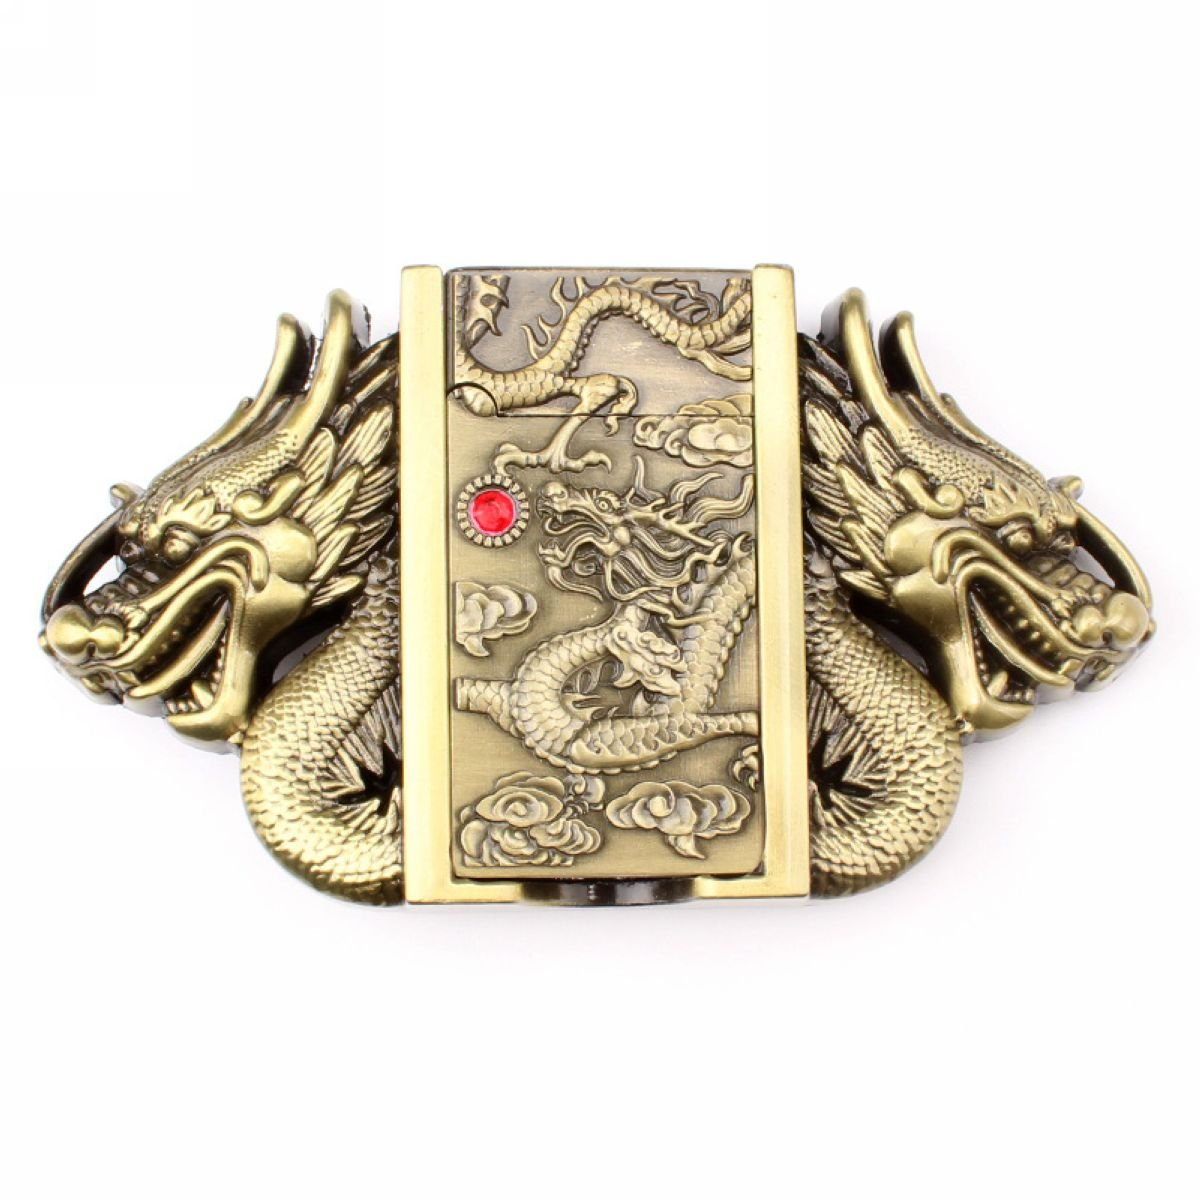 Vintage Dragon Lighter Belt Buckle Cowboy Native American Motorcyclist (LTR-05) IW-02-G